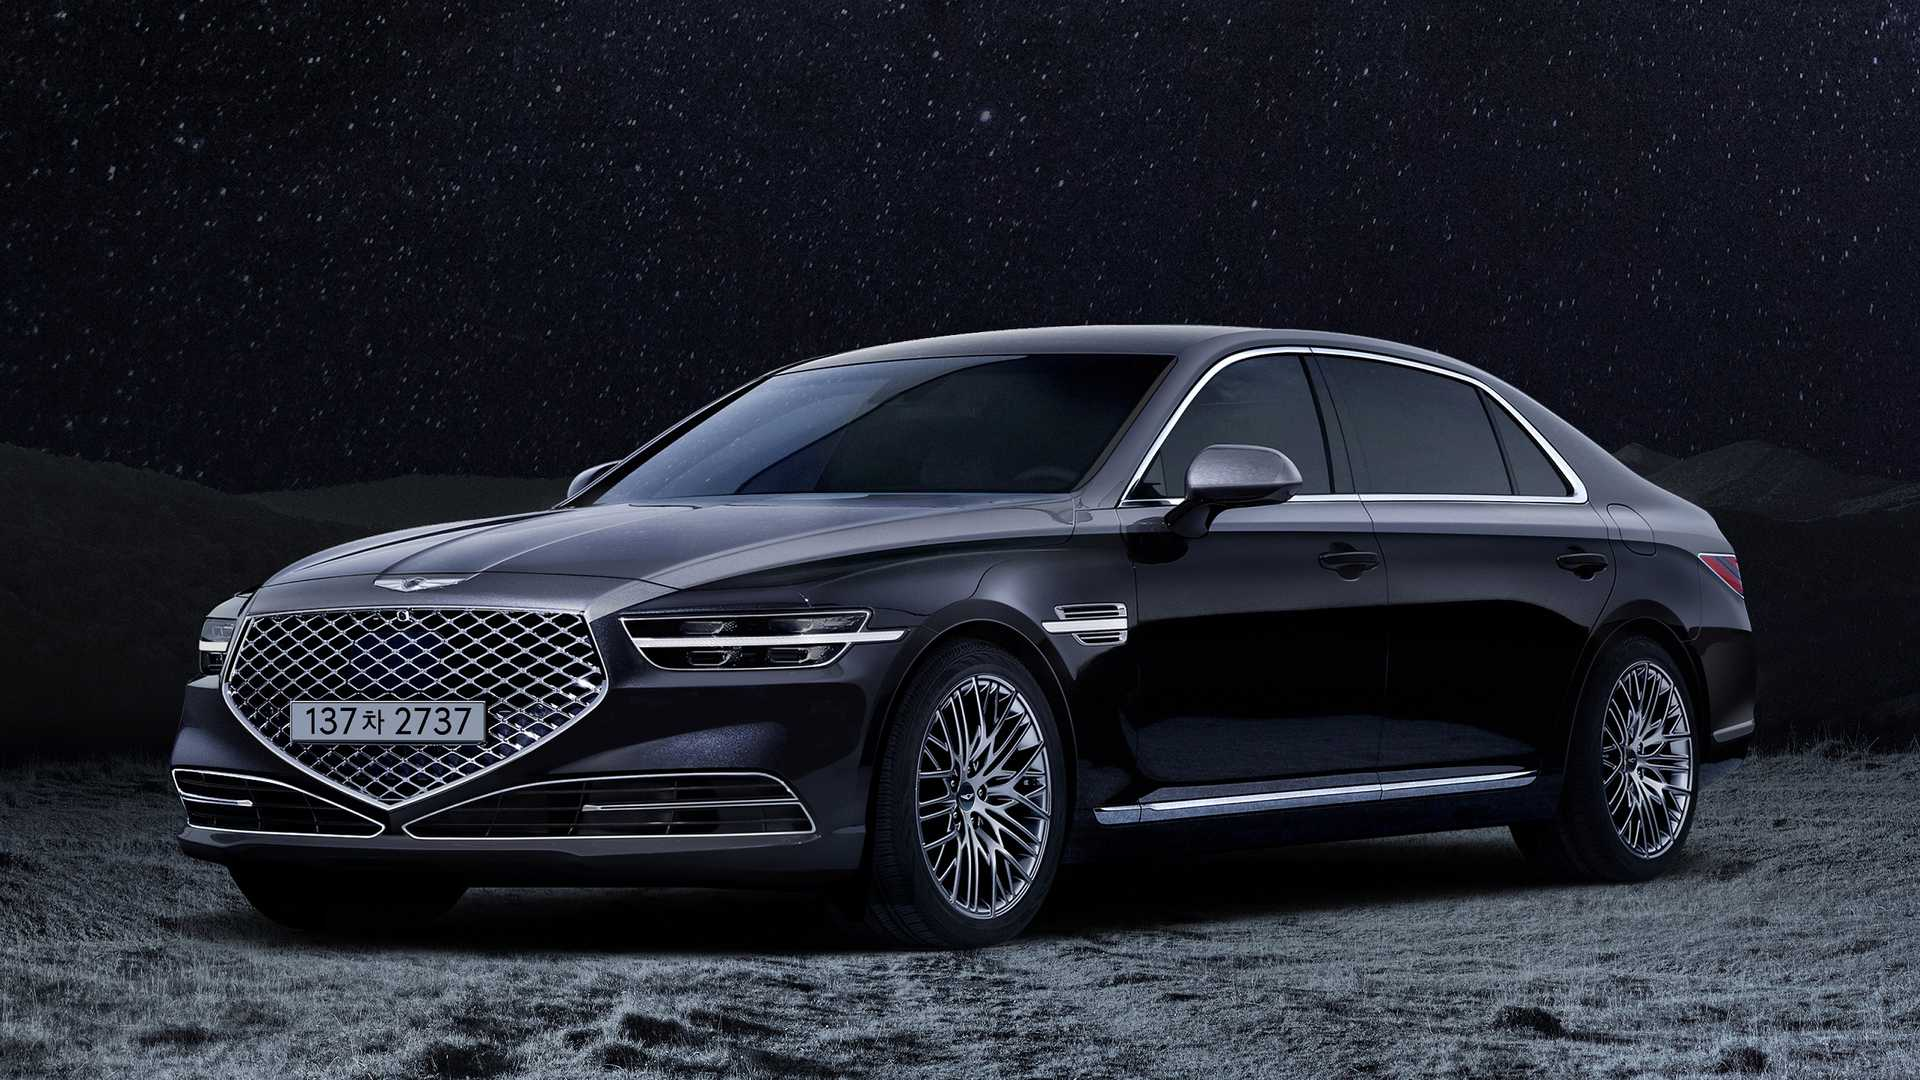 Genesis has unveiled the Stardust edition of its G90 flagship saloon, which will come out in a production run limited to 50 units.